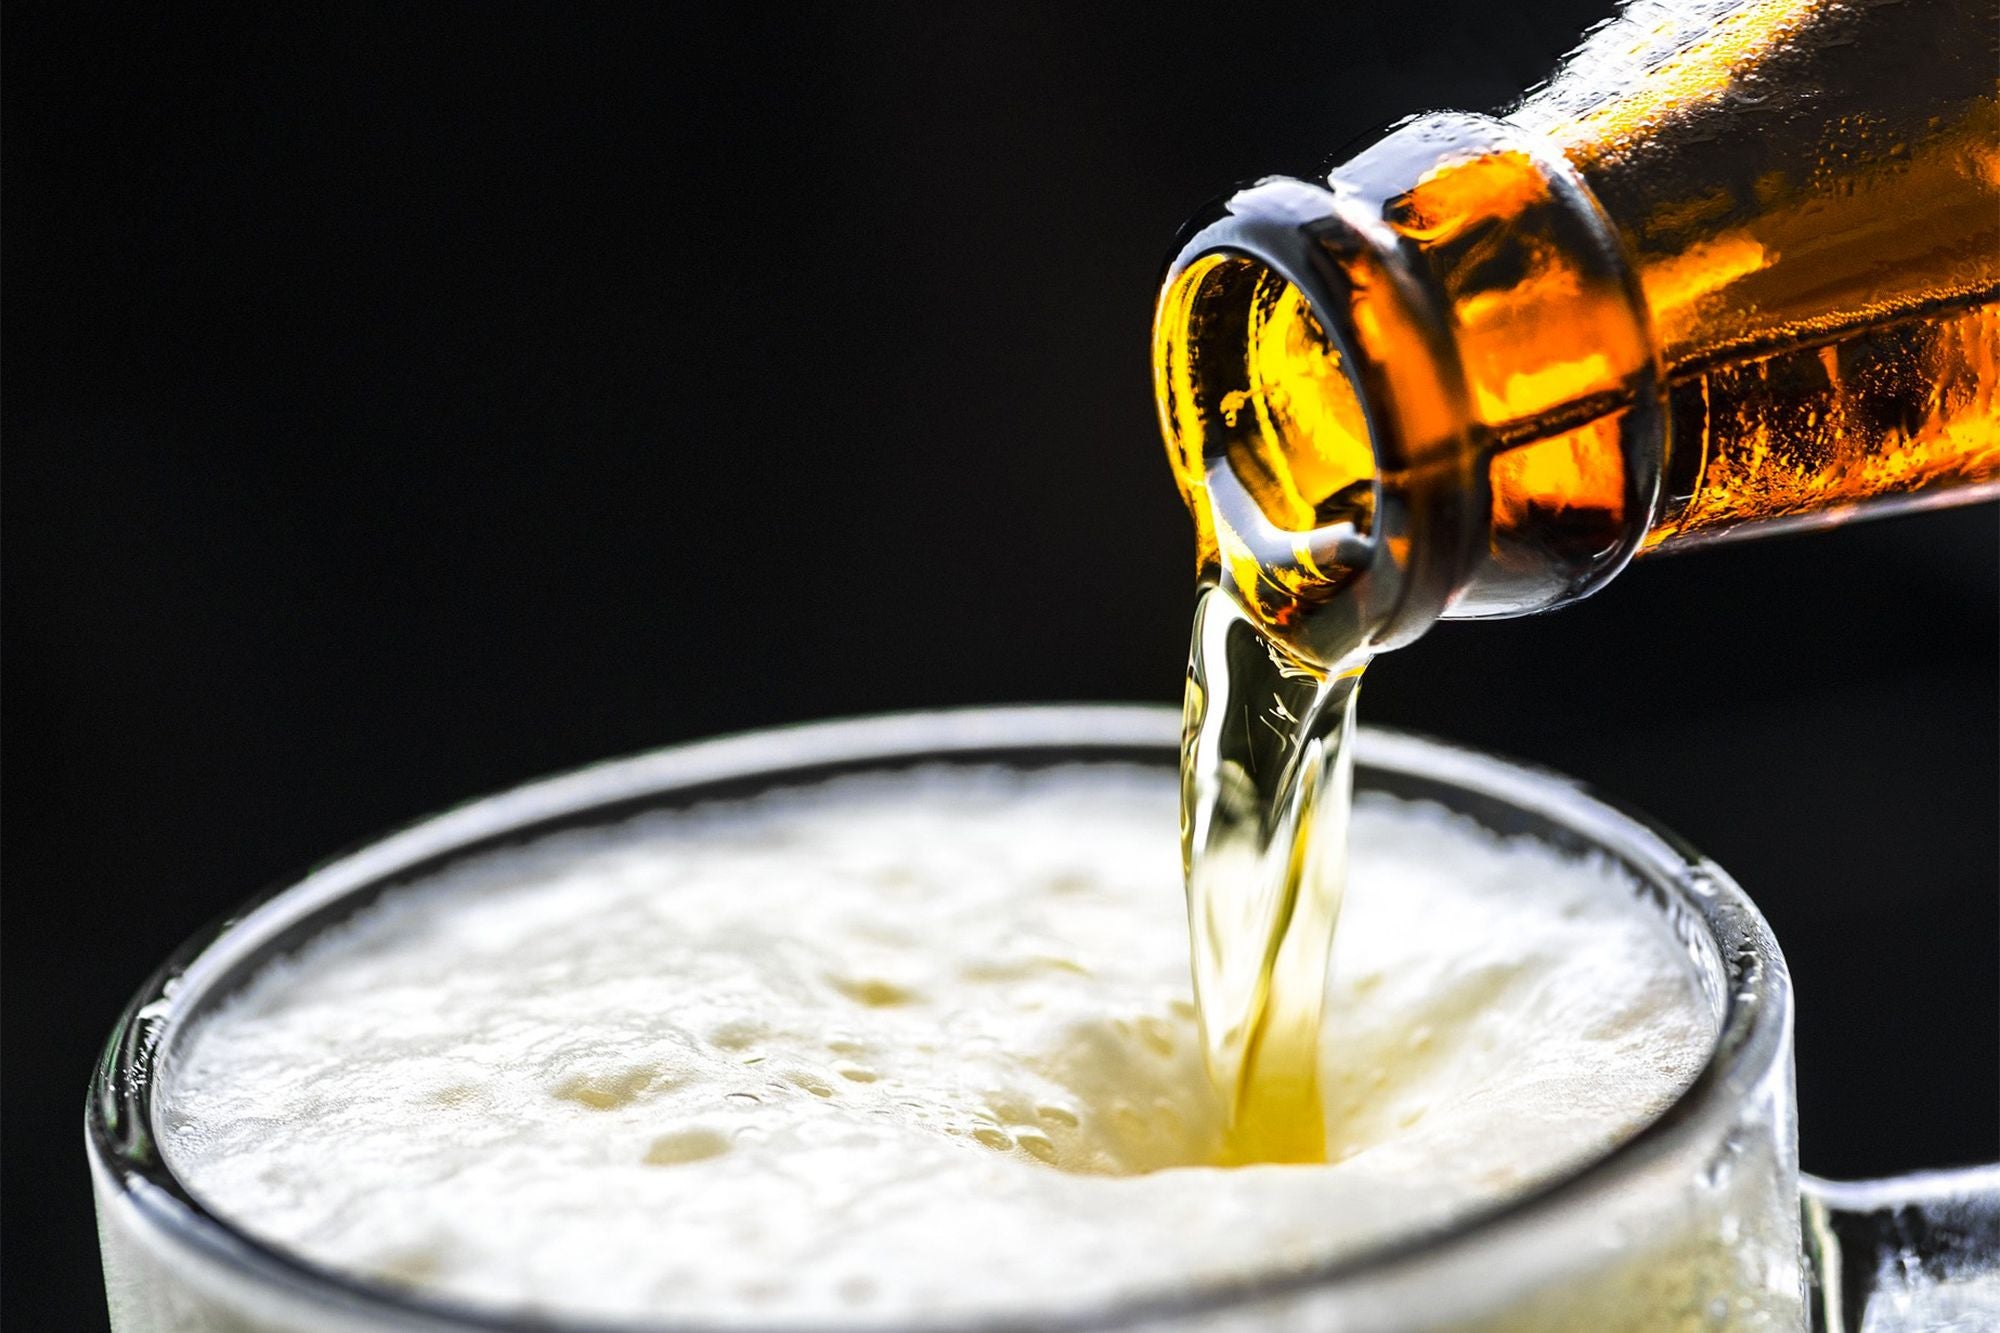 World's Largest Beer Brewer Sets Up Cybersecurity Team